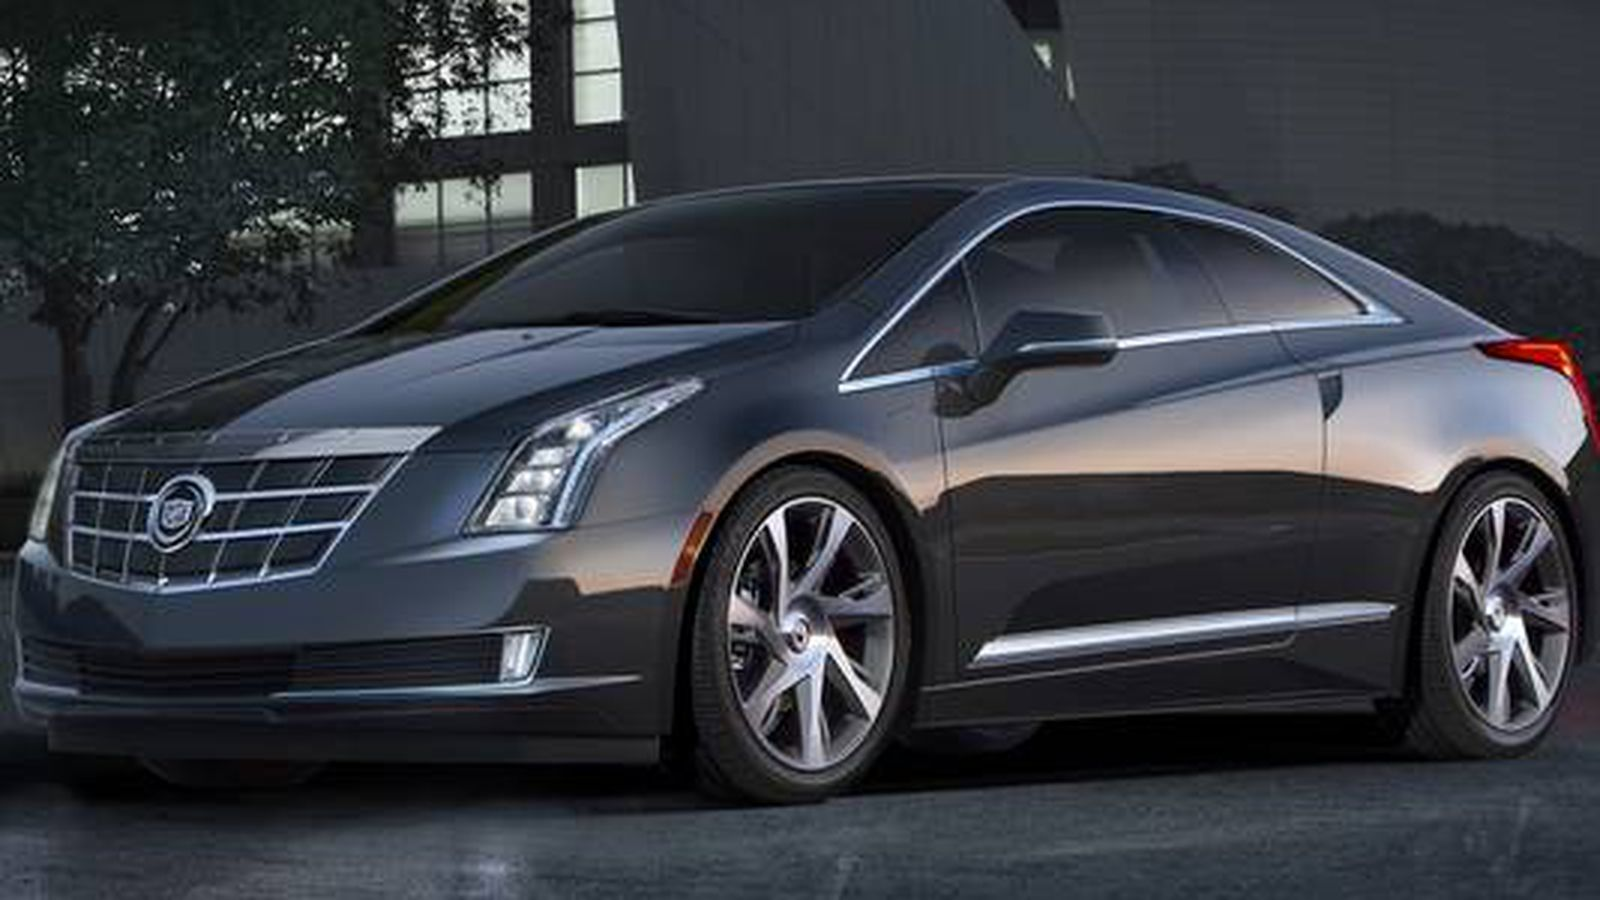 cadillac is launching a car subscription service for 1500 a month the verge